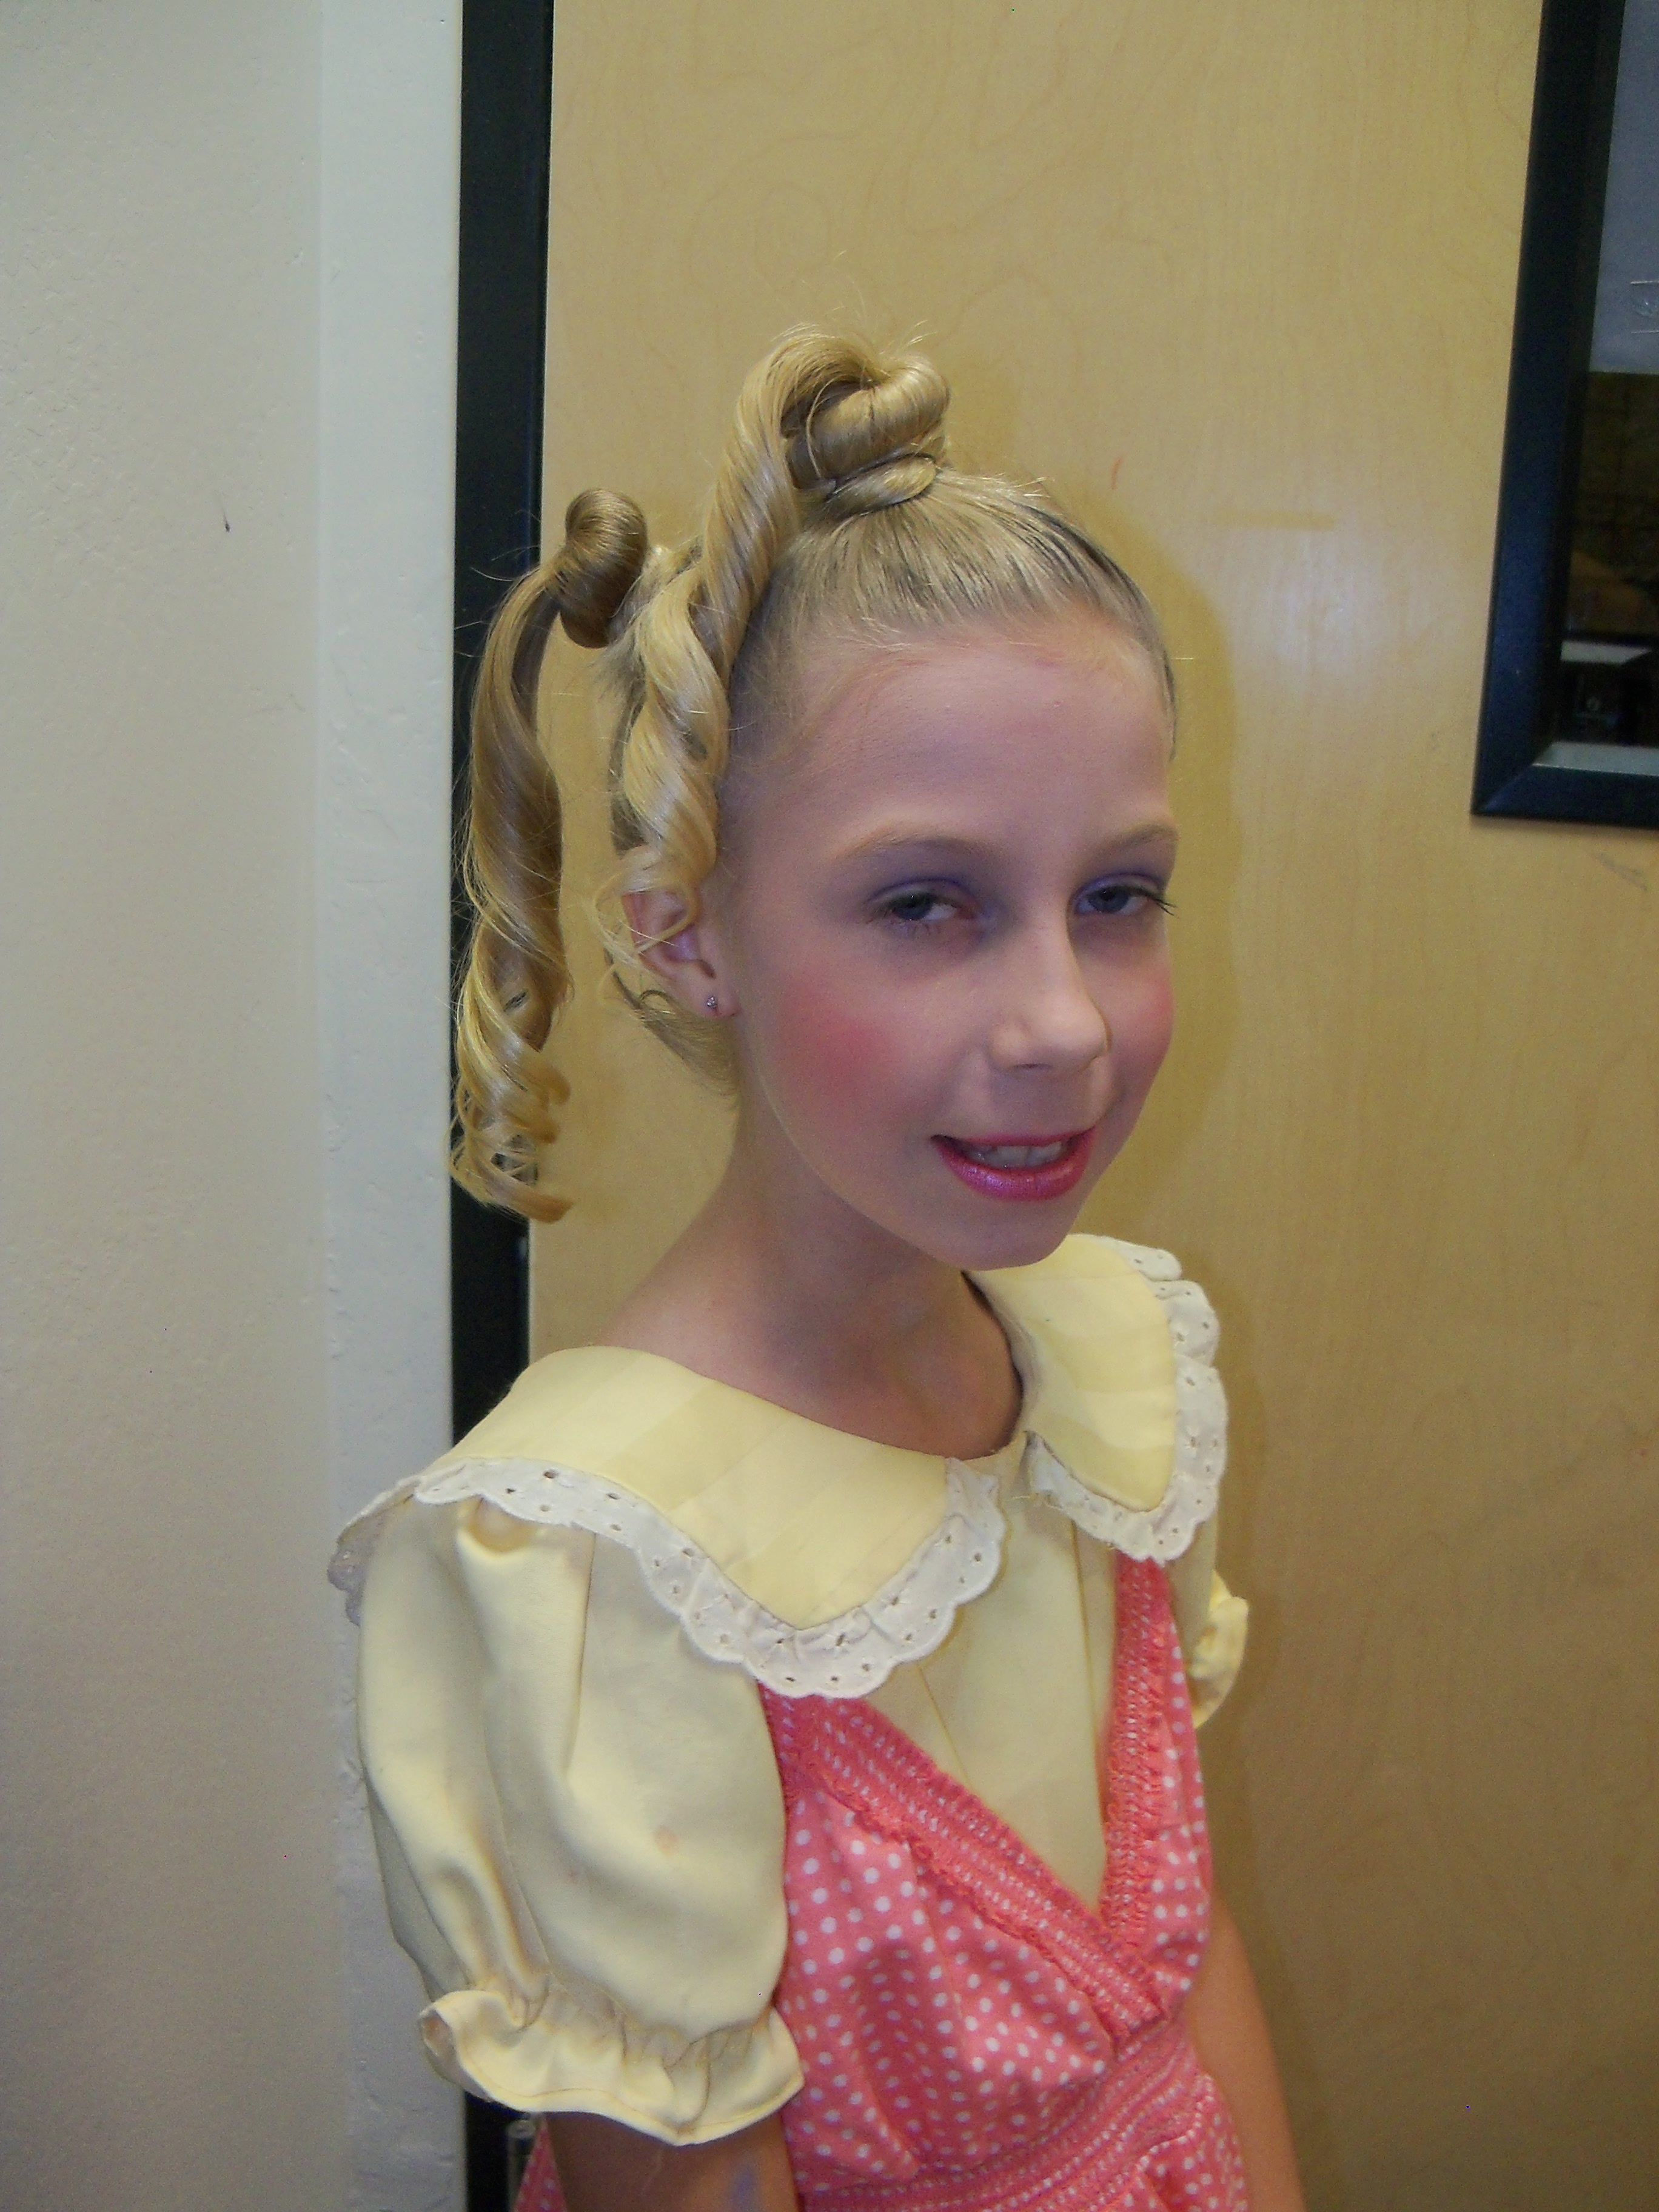 seussical hair - who 2 | hairstyles and crazy costumes